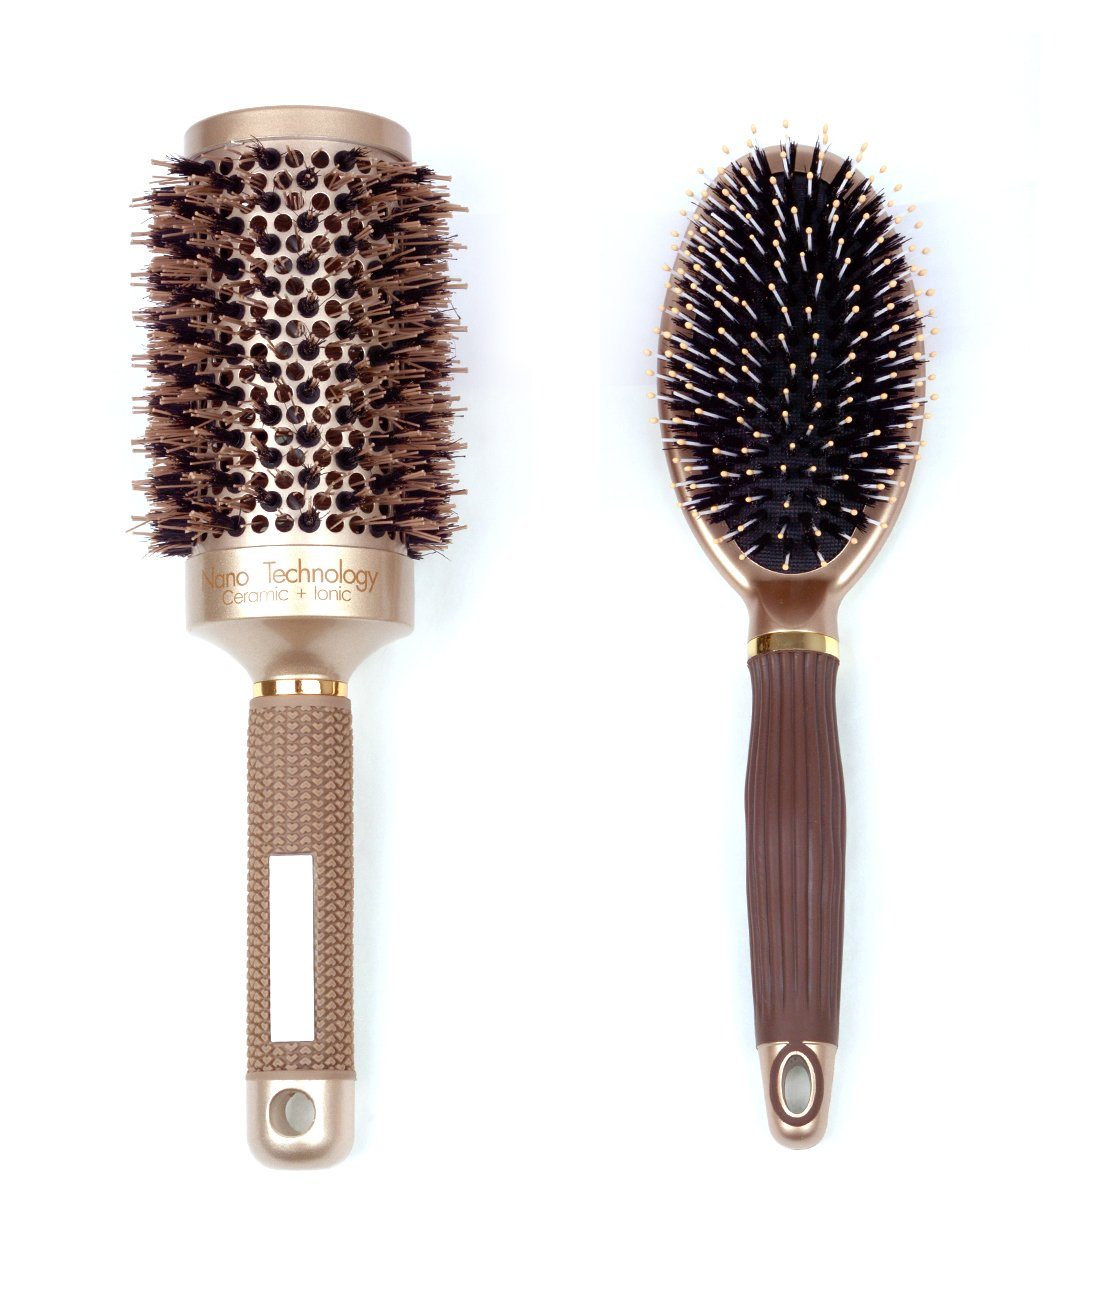 Boar Bristle Round Hair Brush Set - 1 Nano Thermal Ceramic & Ionic Round Barrel Hair Brush and 1 Boar Bristle Paddle Hair Brush, Best for Styling, Straightening, Detangling Wet, Dry, Thick, Thin Hair